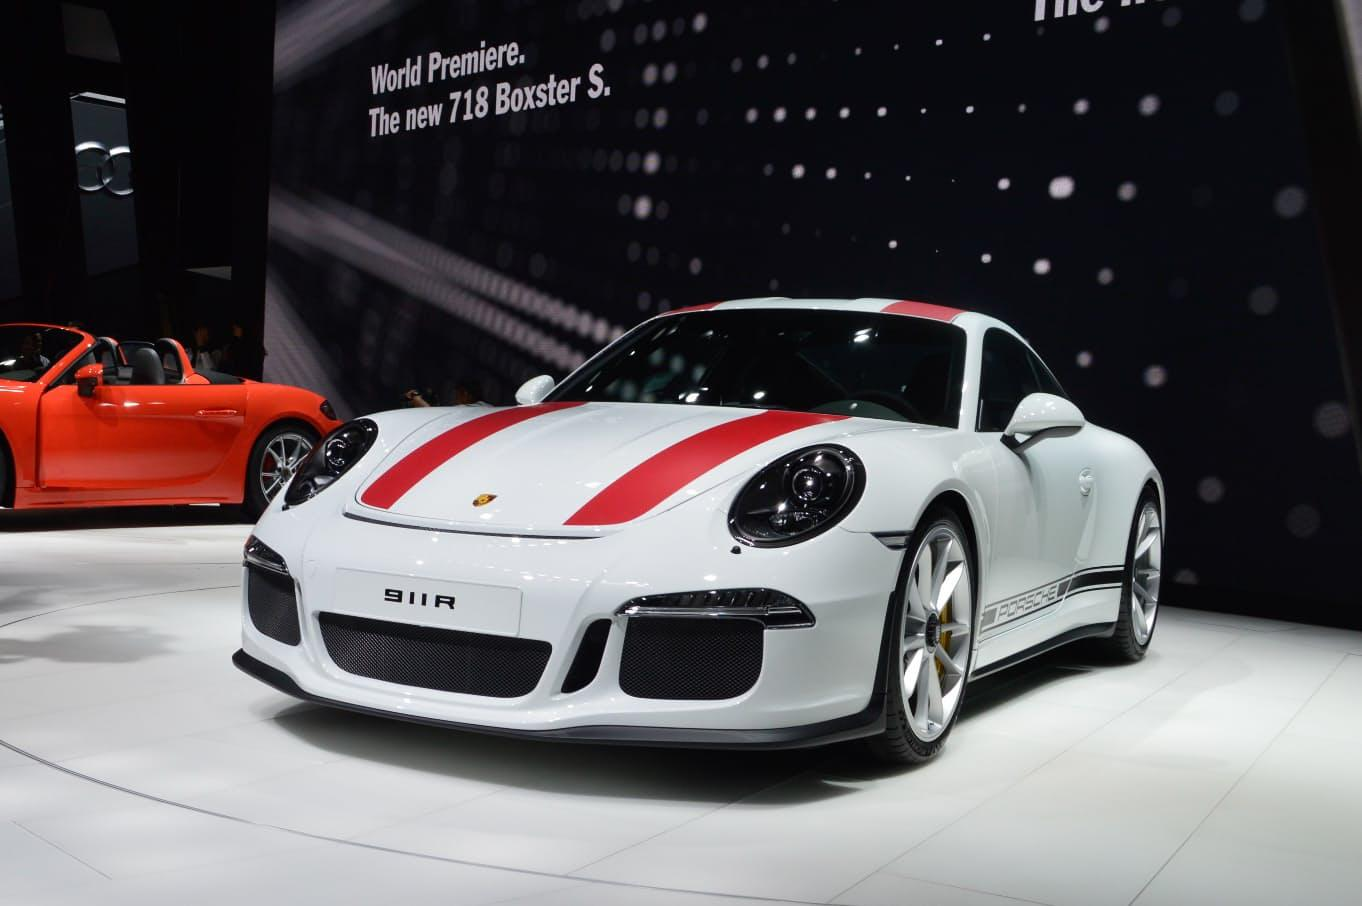 The Porsche 911 R was launched at the Geneva Motor Show